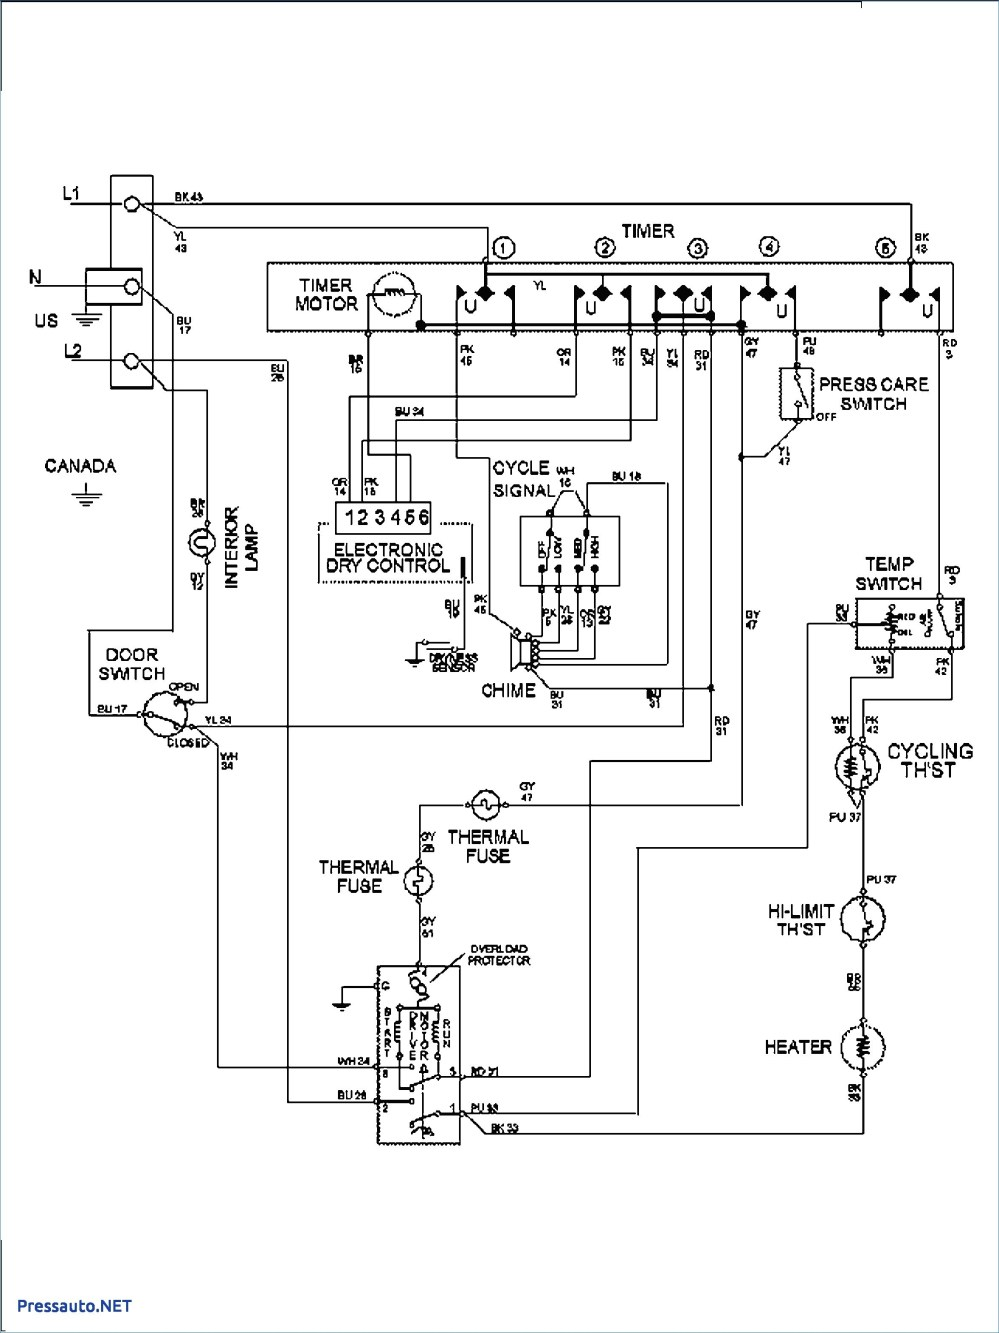 medium resolution of sears headlight wiring diagram free download wiring diagram dryer schematic wiring diagram official site wiring diagramsmaytag